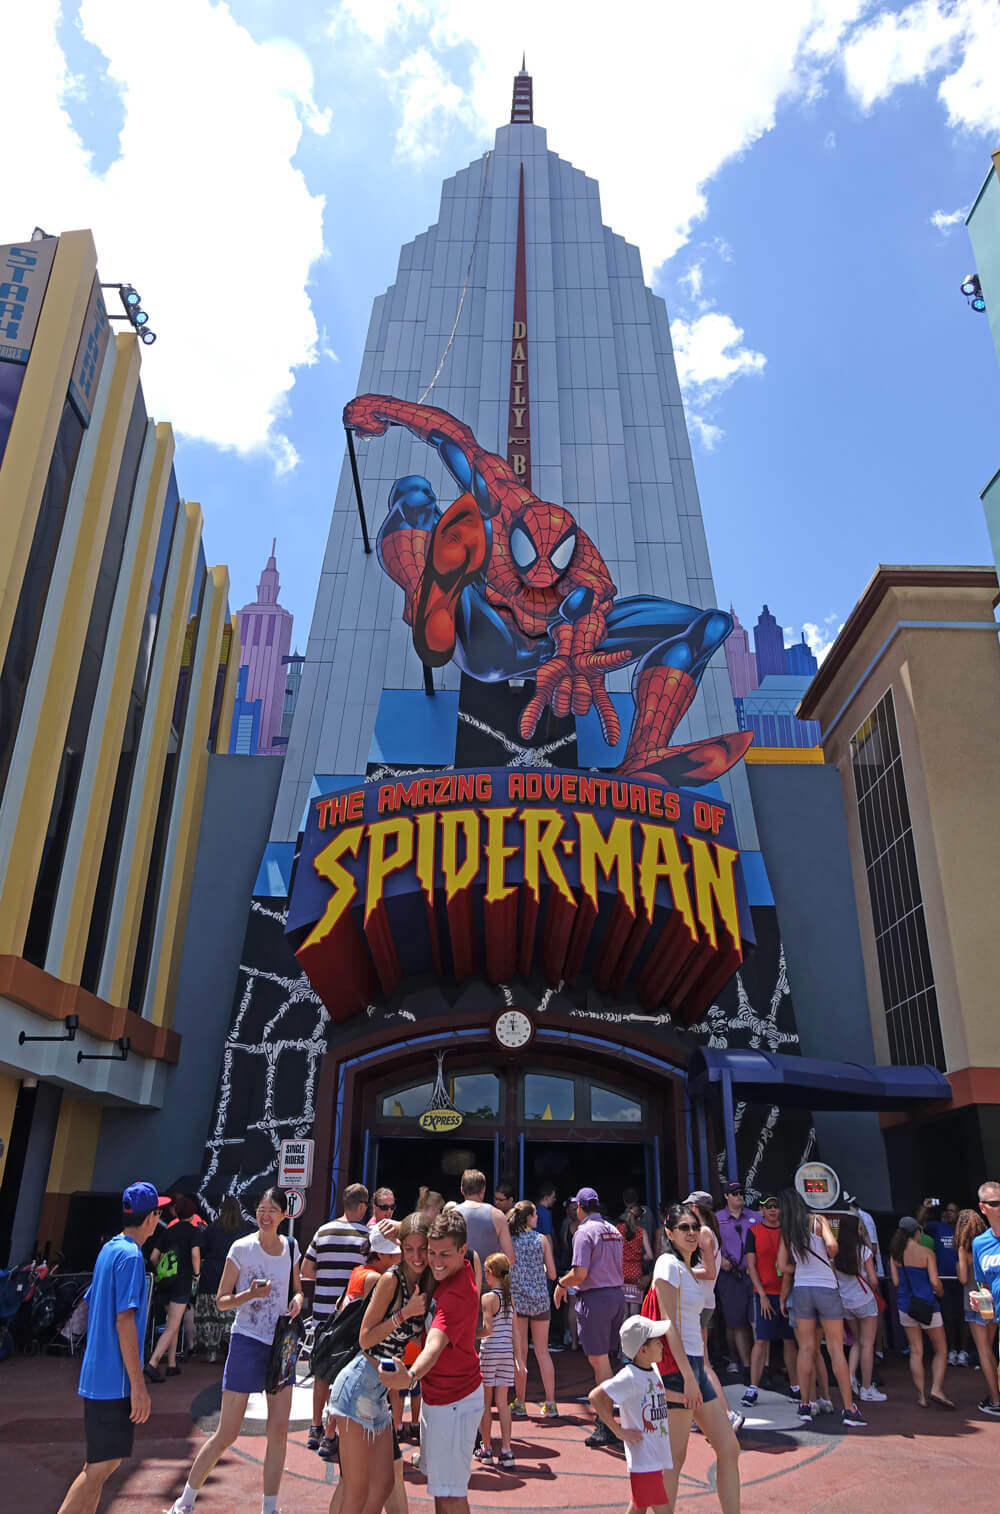 Height Requirements at Universal Orlando Resort - Universal Florida - The Amazing Adventures of Spider Man